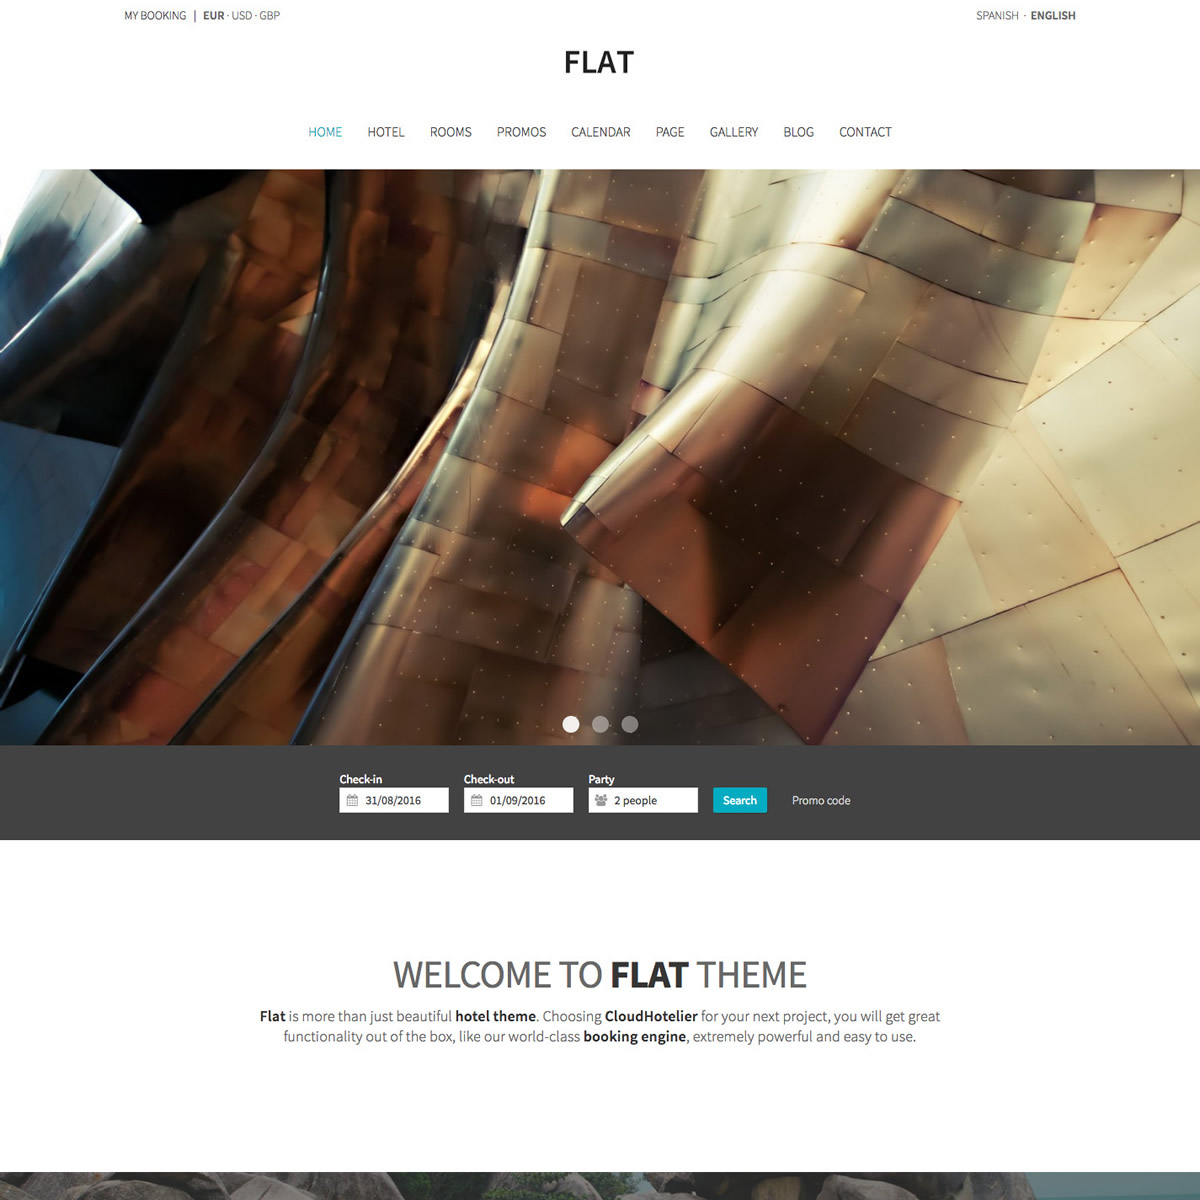 CloudHotelier Flat Hotel Theme